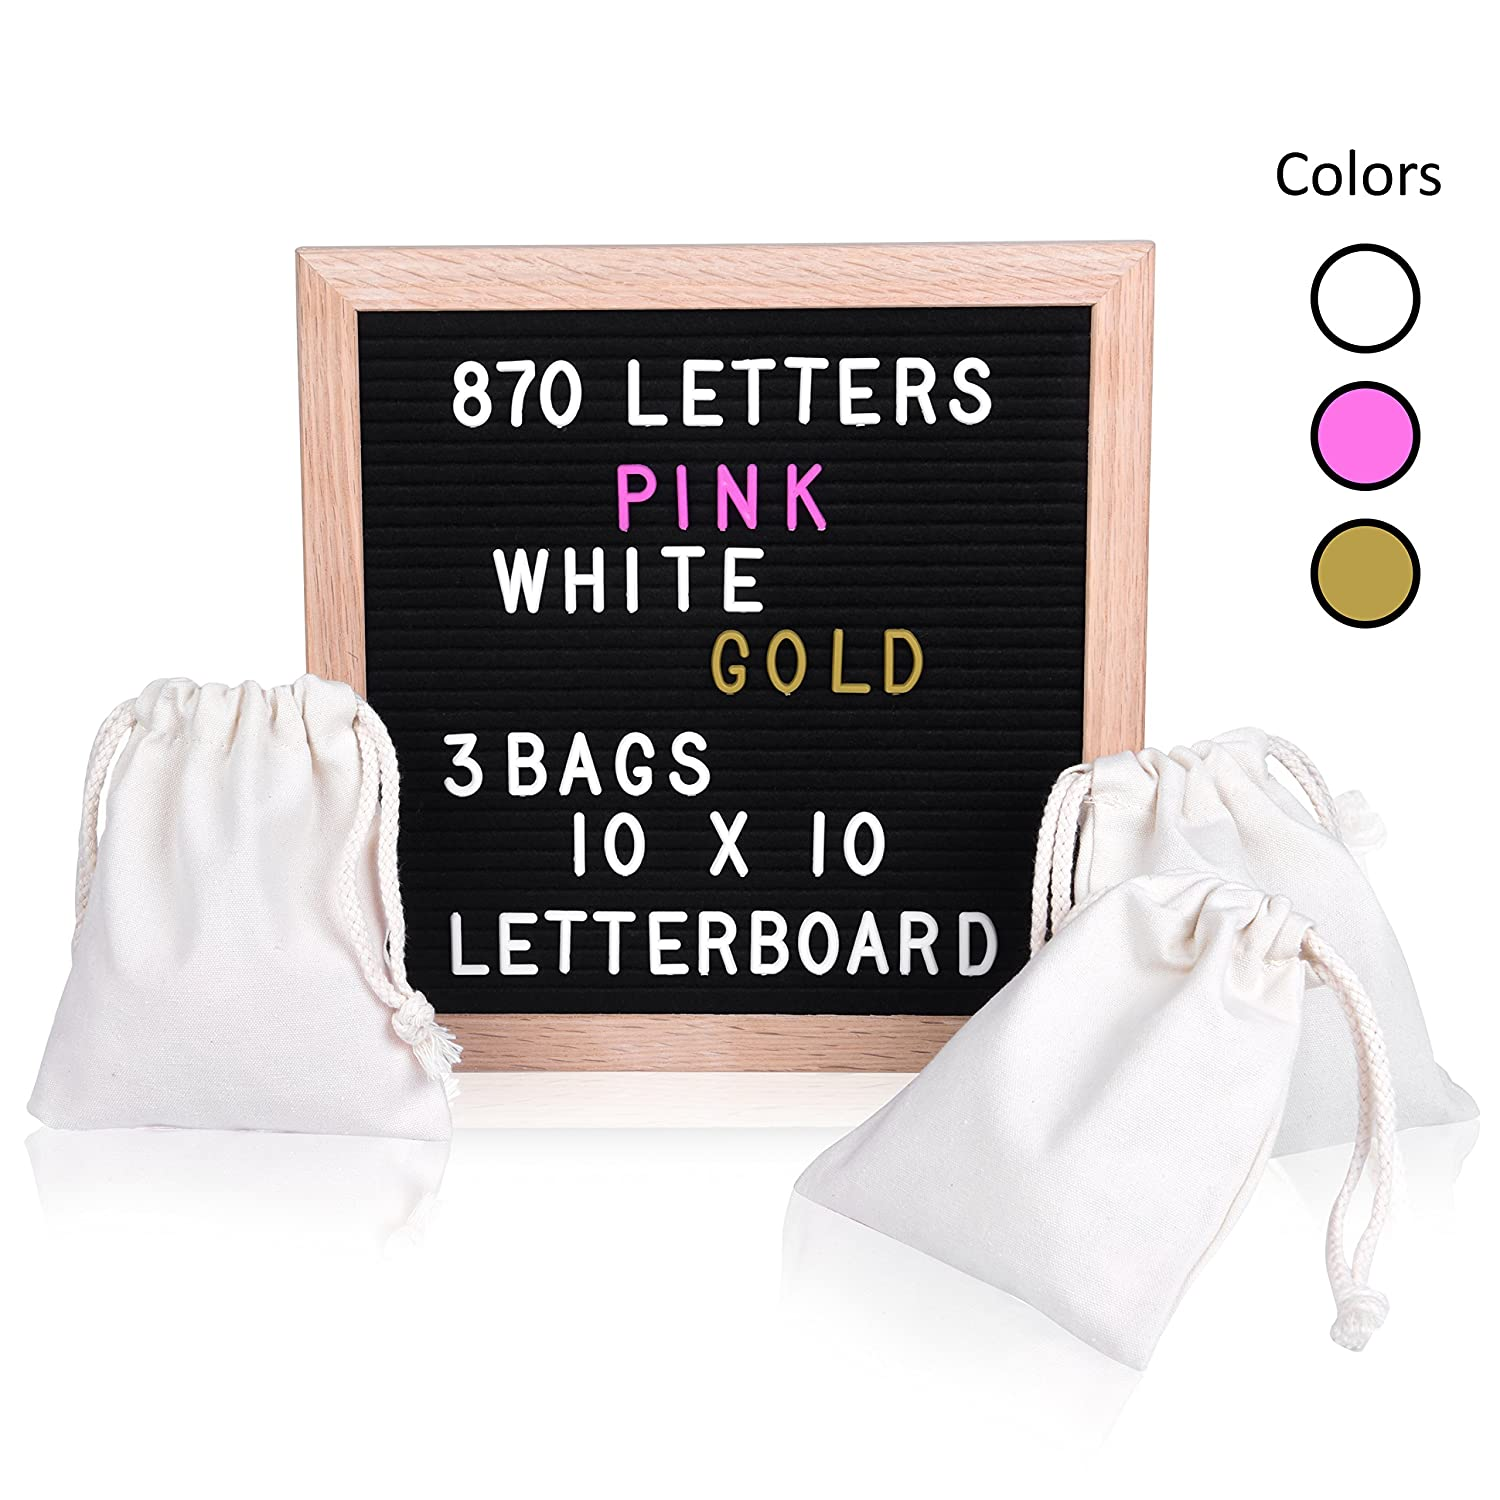 Changeable letter boards amazon office school supplies vintage black felt changeable letter board 10x10 inches 870 plastic letters 3 popular colors gold pink white hang sign or display 3 free bags sciox Image collections